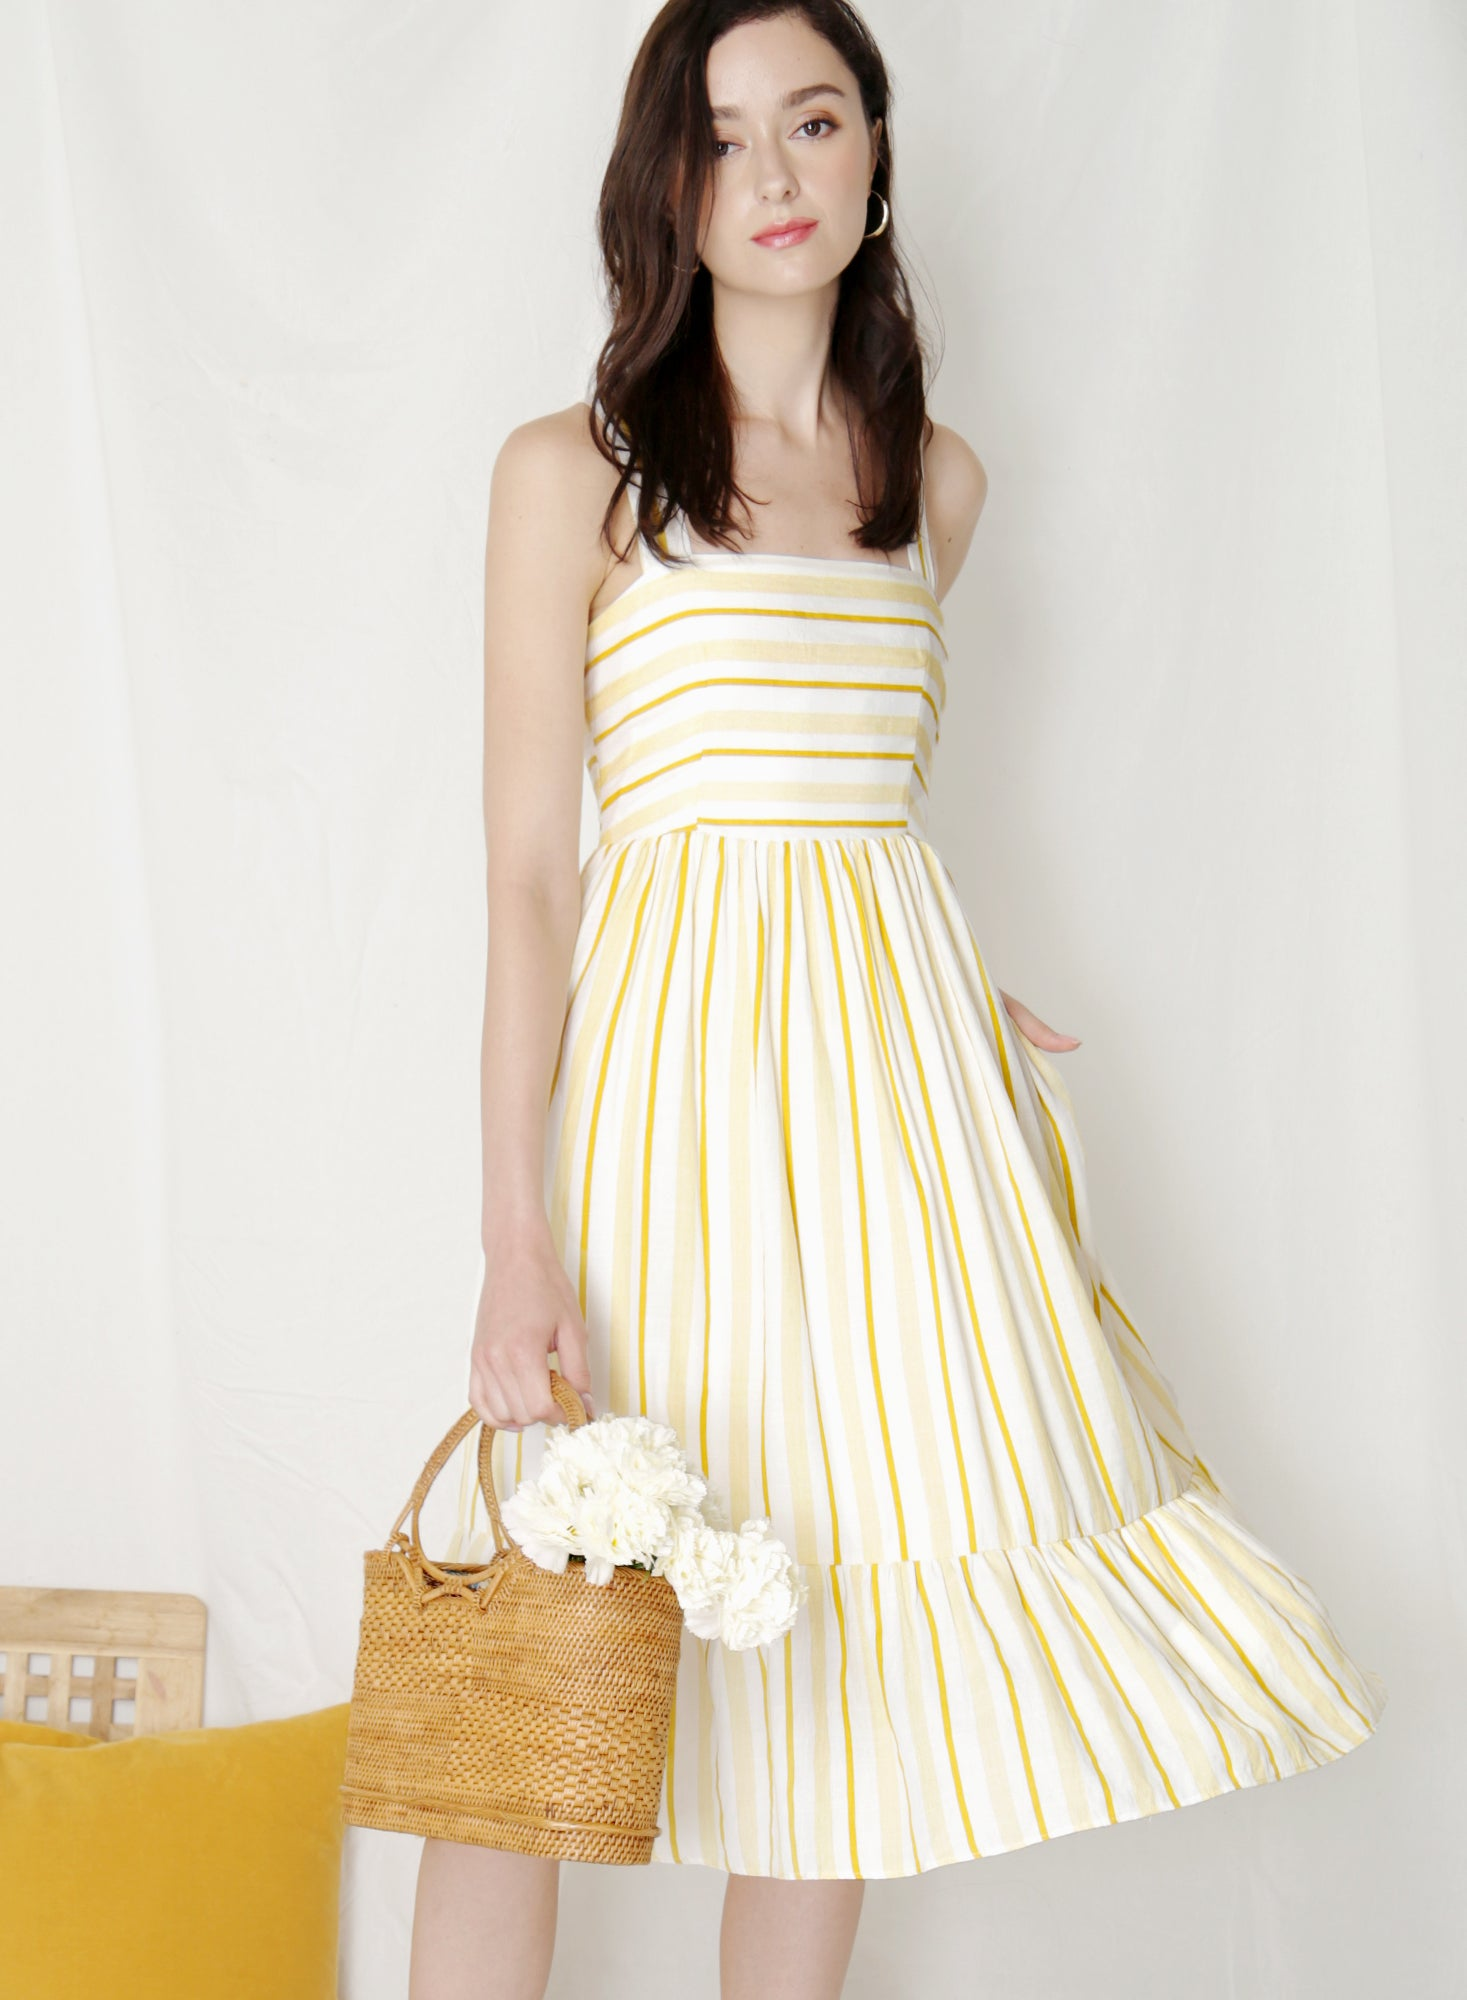 Fable Cross Back Midi Dress (Yellow Stripes) at $ 43.50 only sold at And Well Dressed Online Fashion Store Singapore